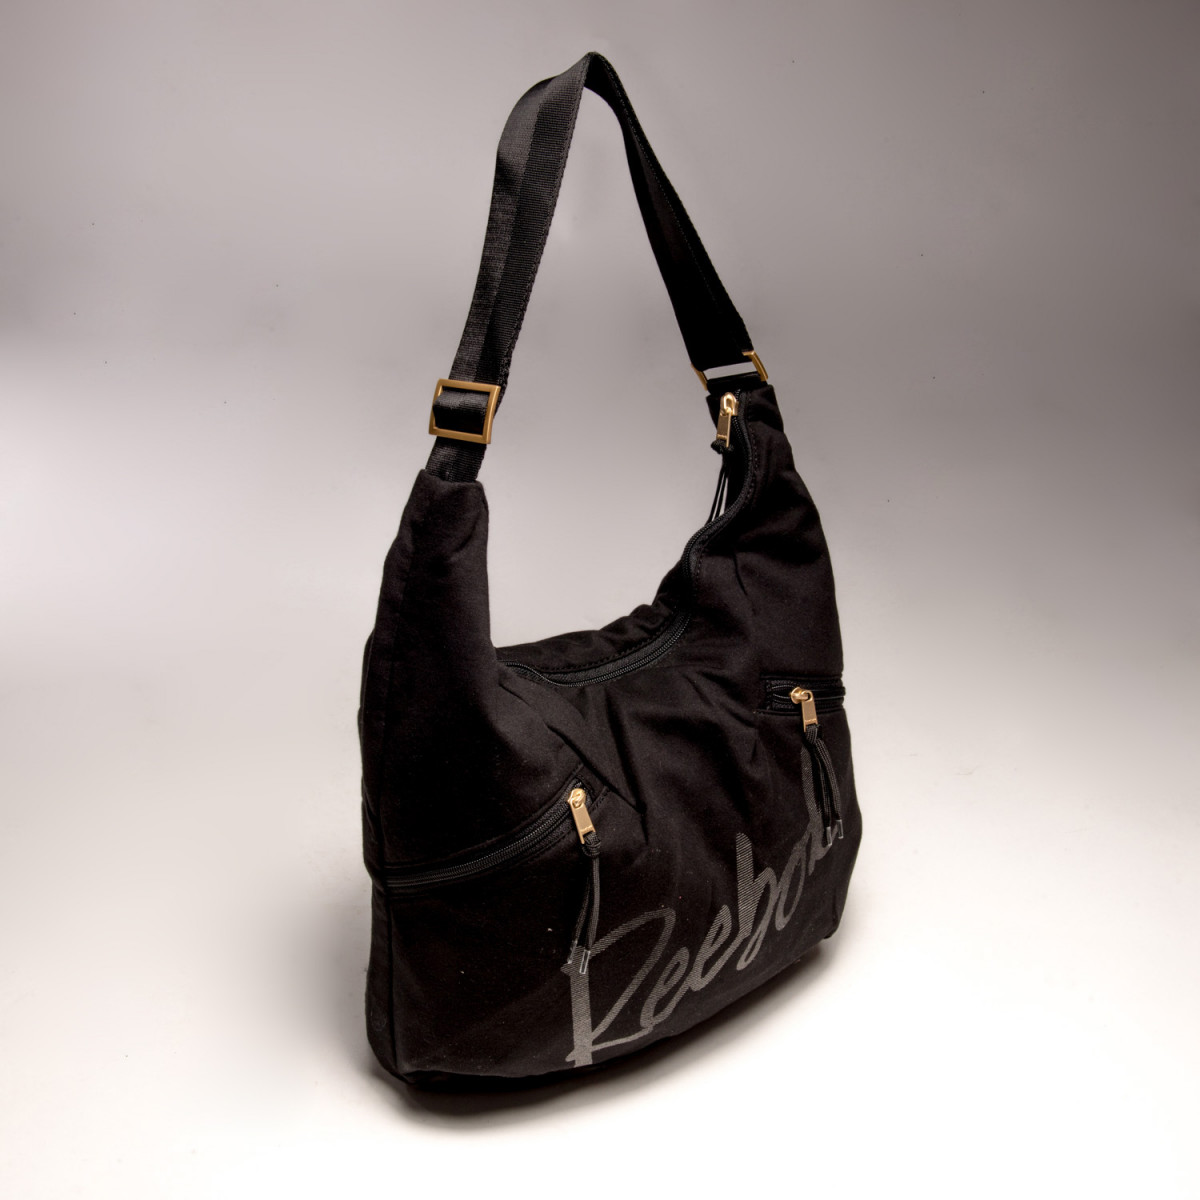 CARTERA REEBOK W CASUAL HOBO